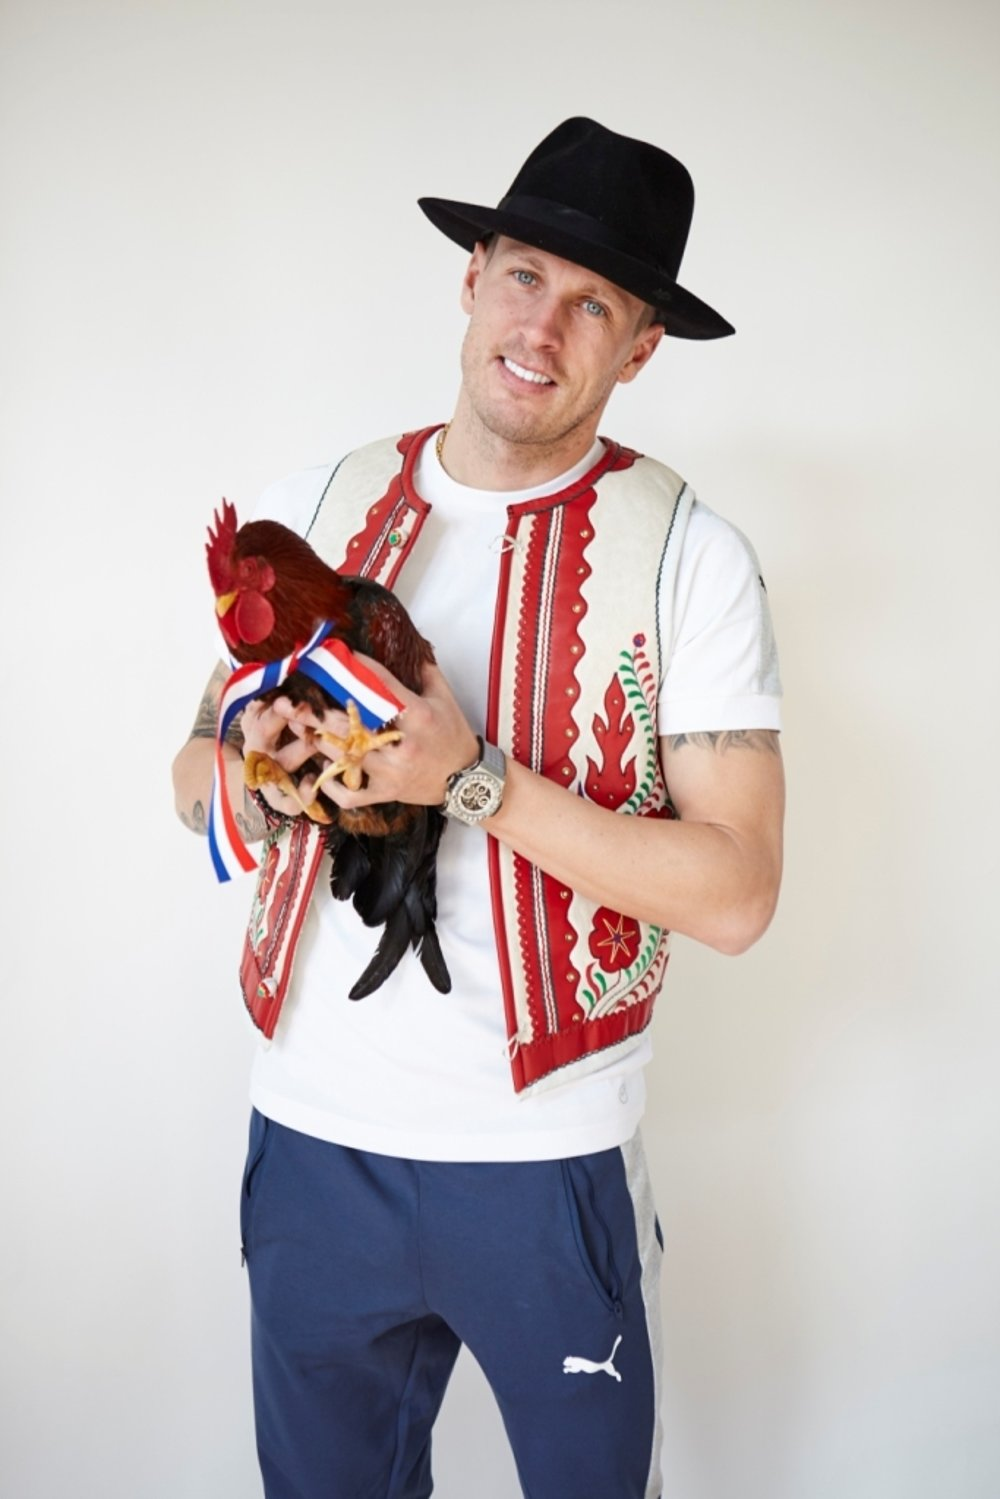 Ján Ďurica had no problems with the rooster.